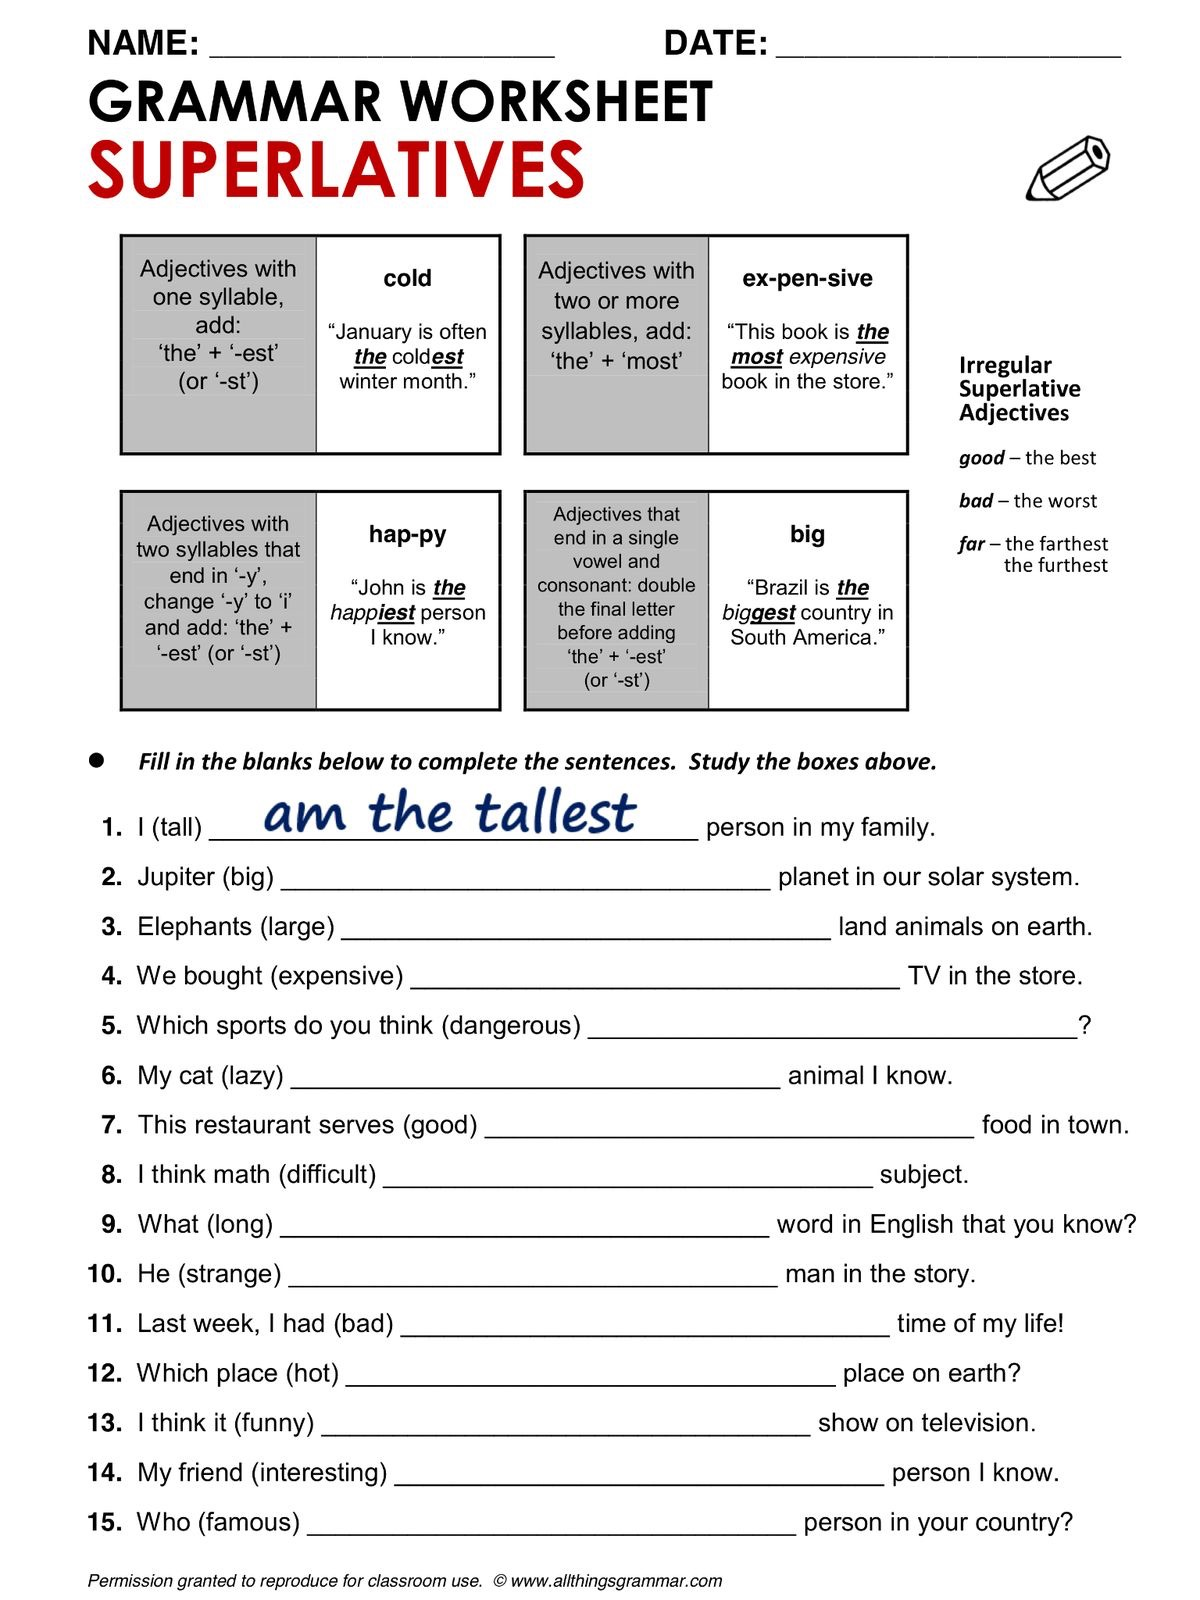 Superlatives Worksheet